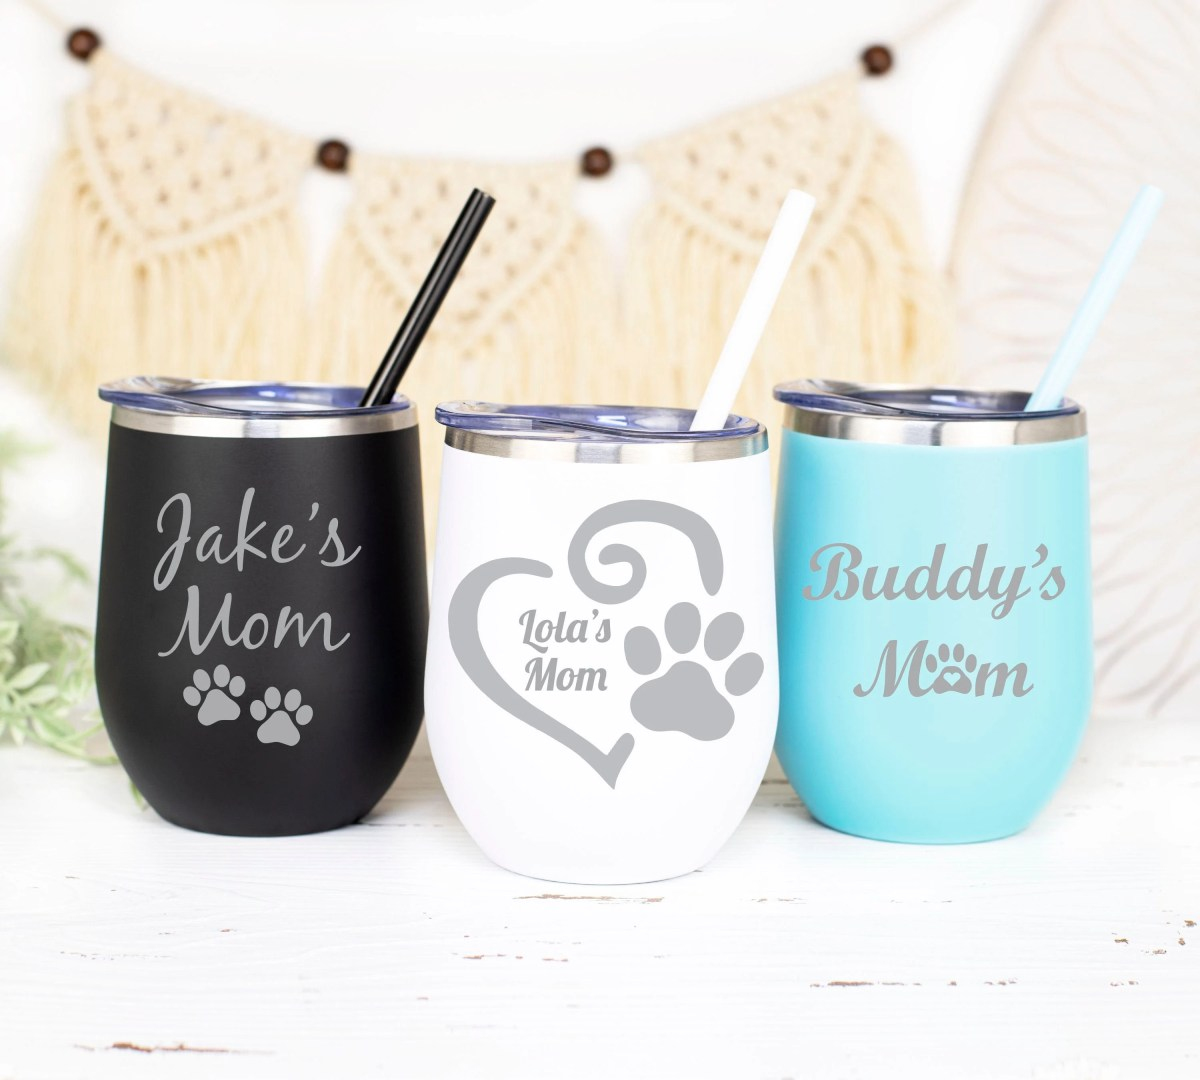 Onebttl Dog Mom Wine Tumbler Dog Lover Gifts for Women Cynophilist Funny 340ml Dog Themed Insulated Stainless Steel Tumbler with Lid for Dog Owner Daughter Dog Person Coworker Aunt Vet Tech